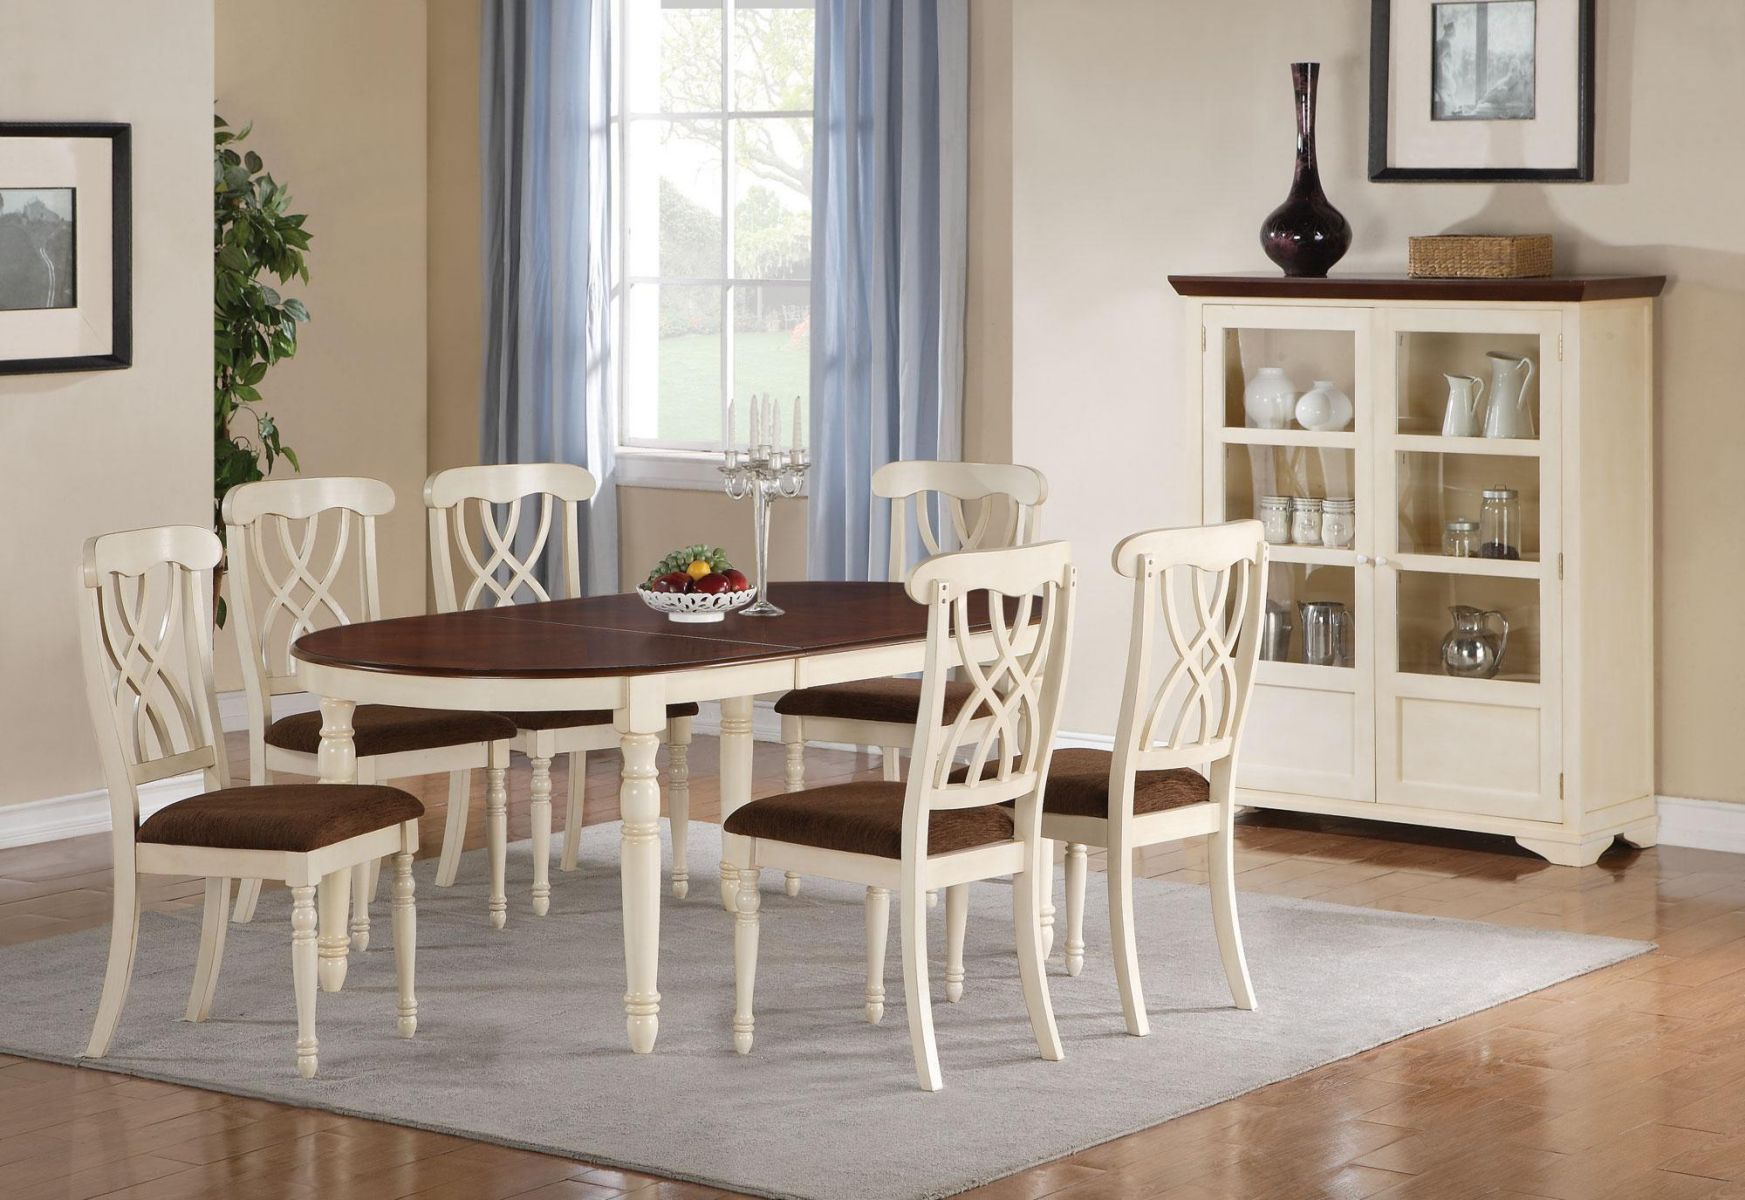 Coaster Dining Room Set Upon Request Call (631) 742-1351 for Best Price Guarantee Dinette Sets New York , Dinette Sets Long Island , Dining Room Sets New York , Dining Room Sets Long Island, Dining Room Chairs Long Island Soft, serene, and charming, the Ca